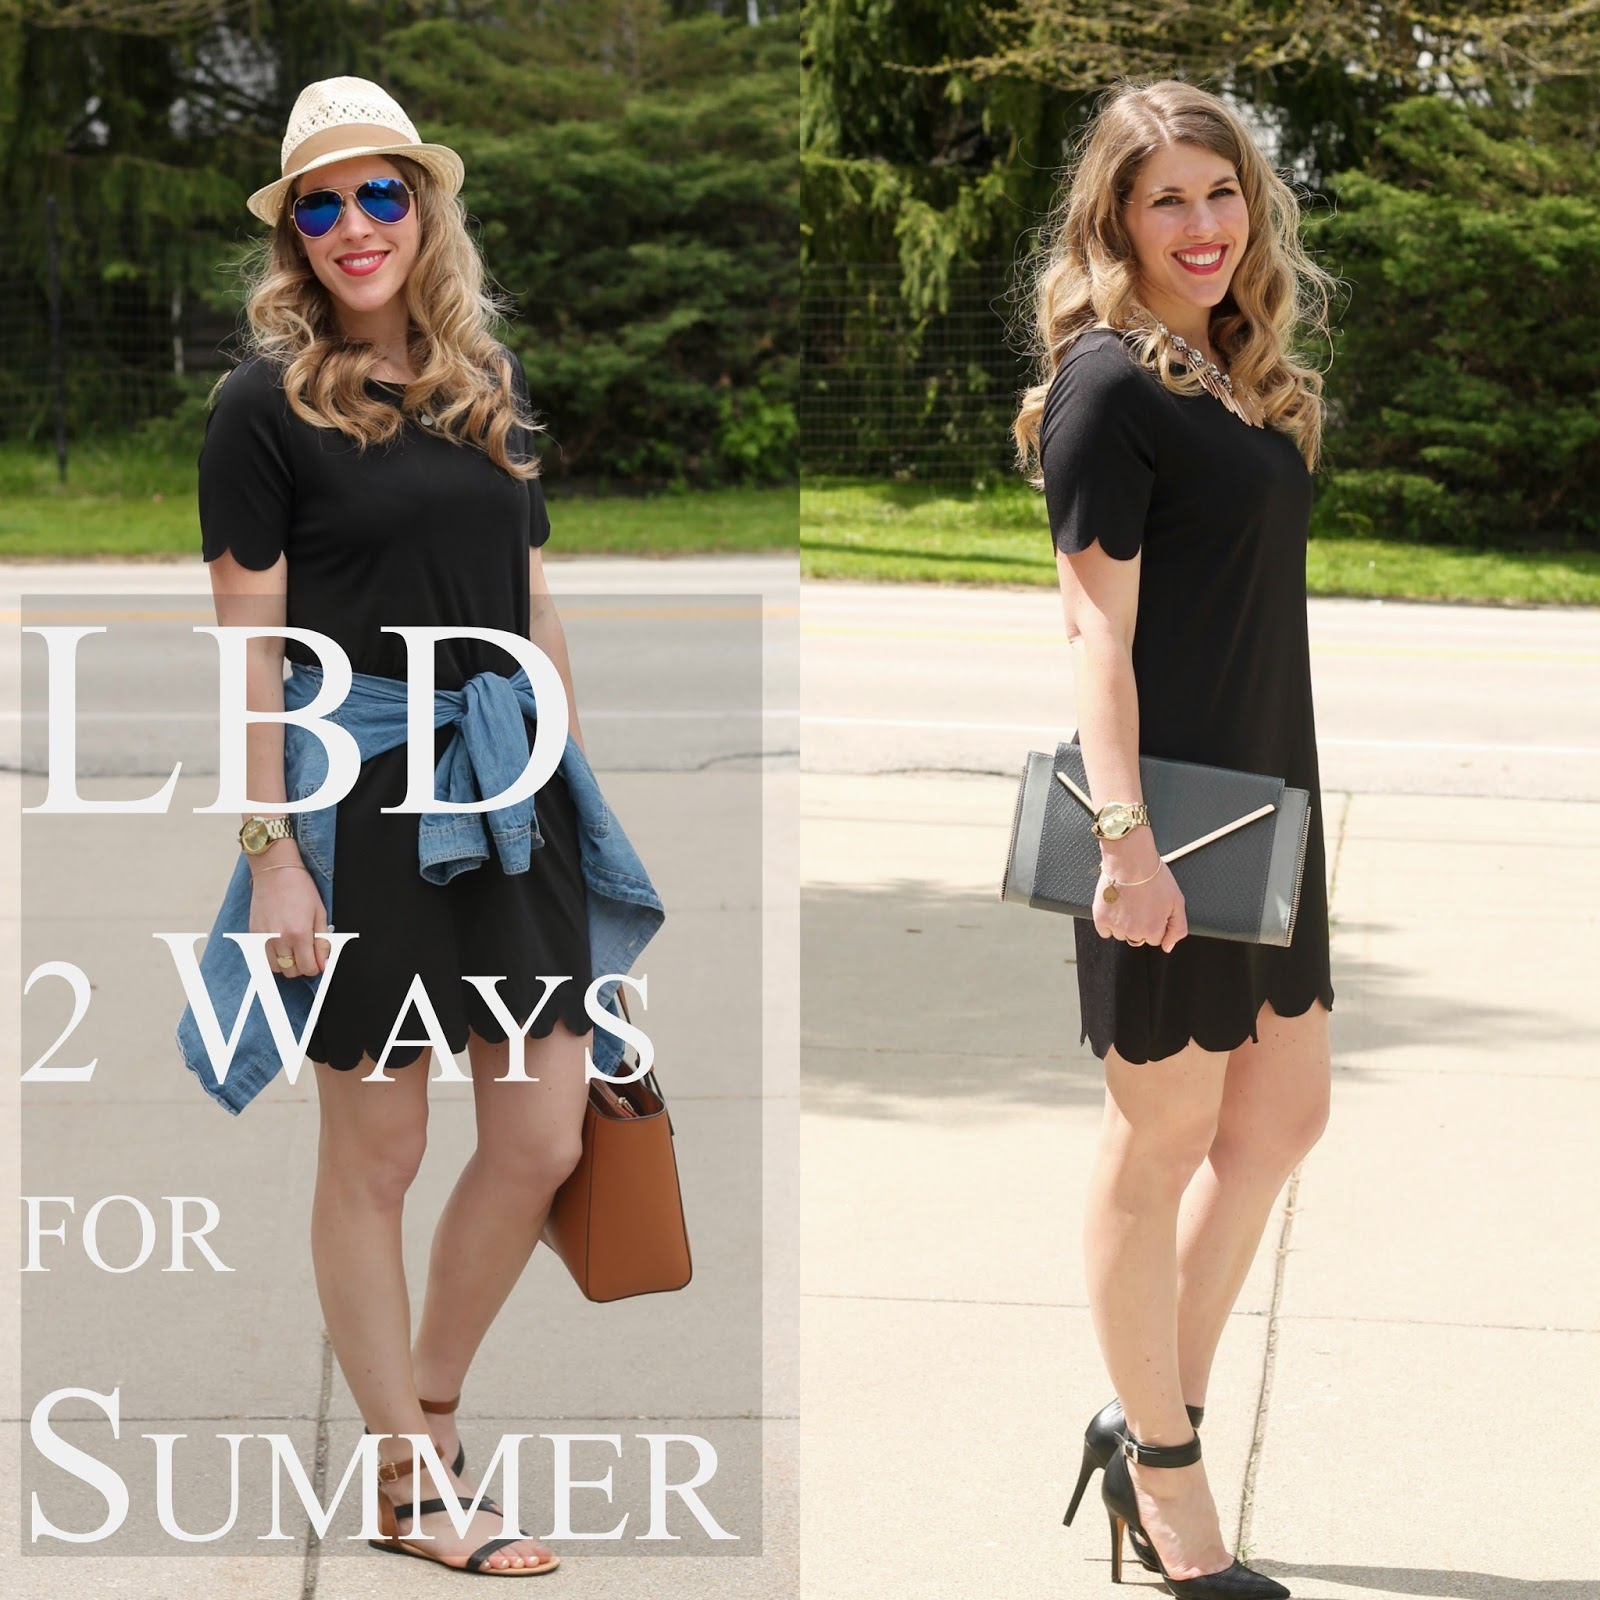 little black dress 2 ways for summer, casual little black dress, dressy little black dress, scalloped little black dress